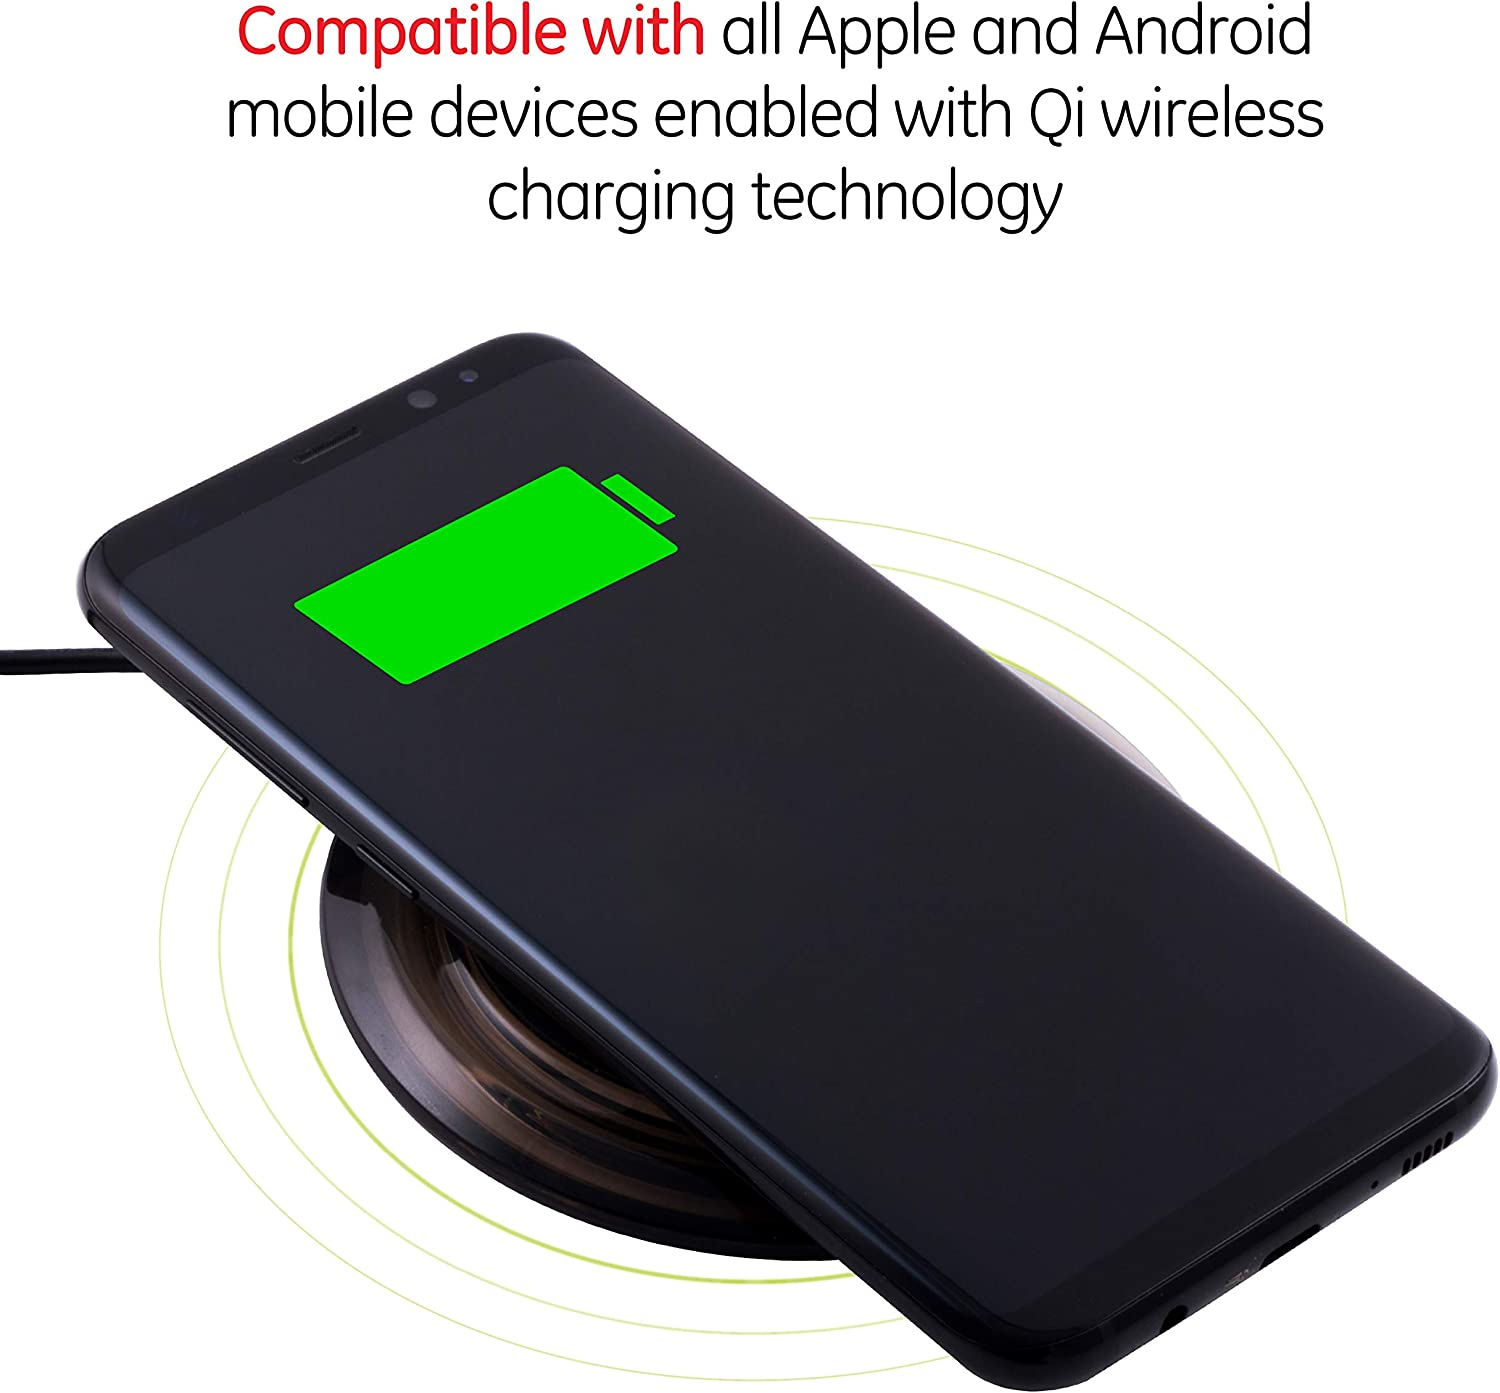 AC Adapter Not Included LightPix Labs Power Lens Wireless Charger for iPhone 11 Pro Max//11 Pro//11//Xs Max//XS//XR//X//8//8 Plus and More Samsung S10//S9//S8//S7//Note 10//Note 9